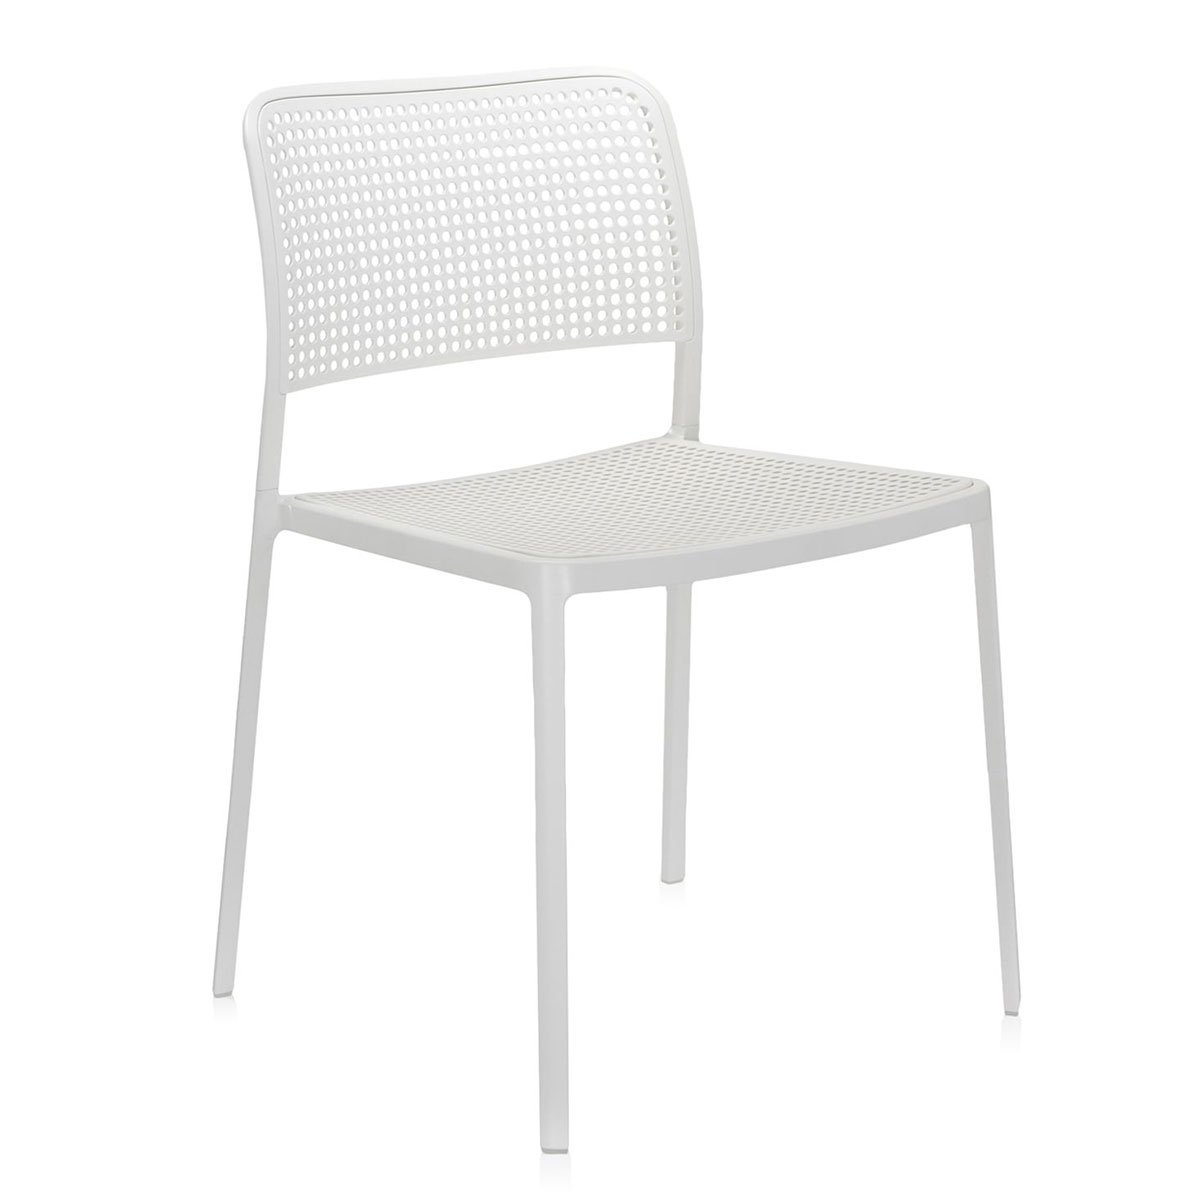 Kartell Audrey Stoel - Wit/wit